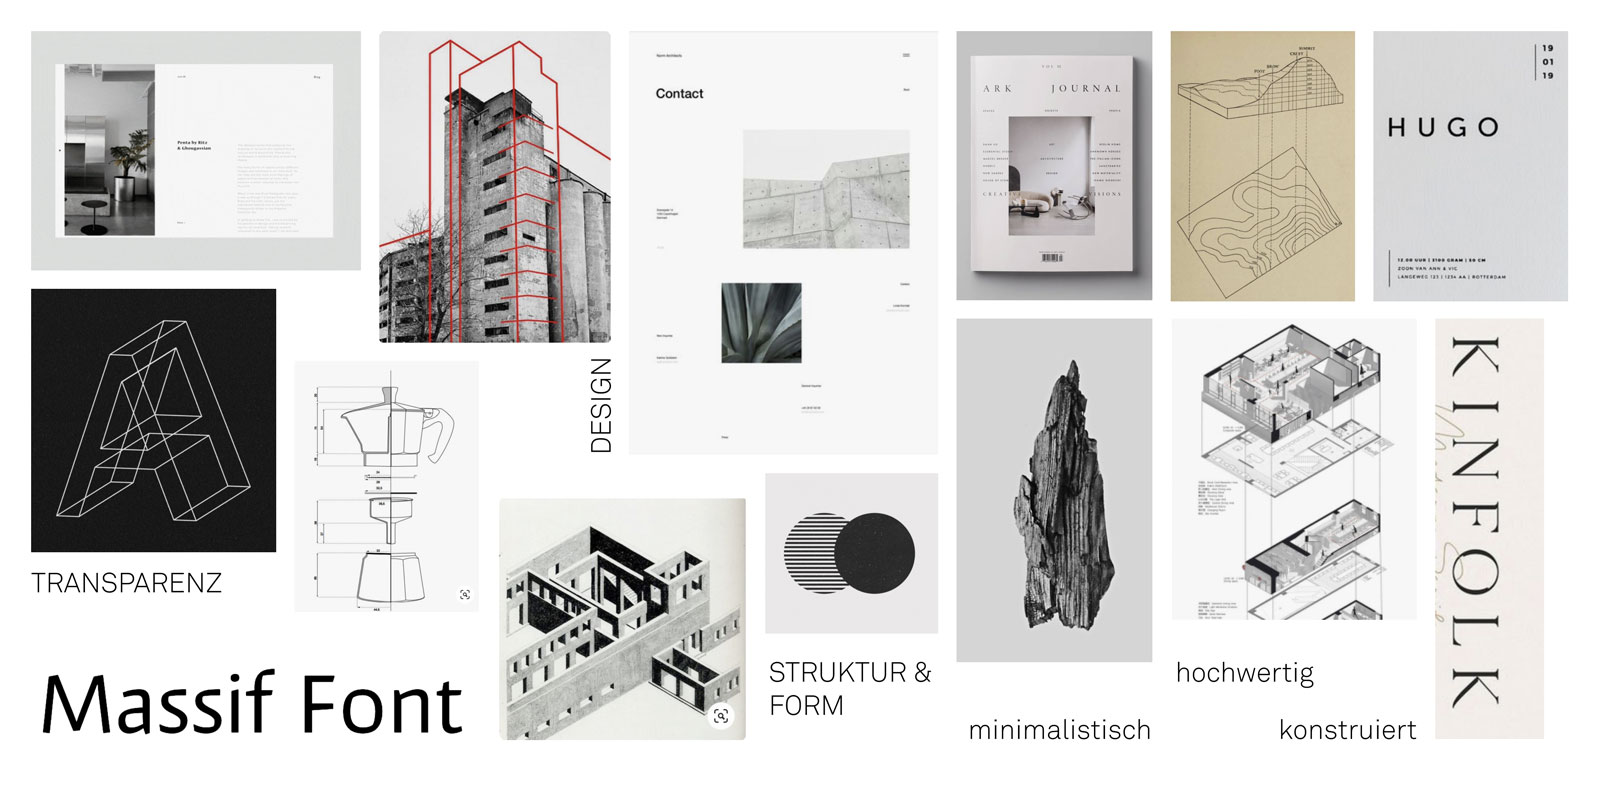 Mood board for the branding of an architecture studio by Alexandra Linortner